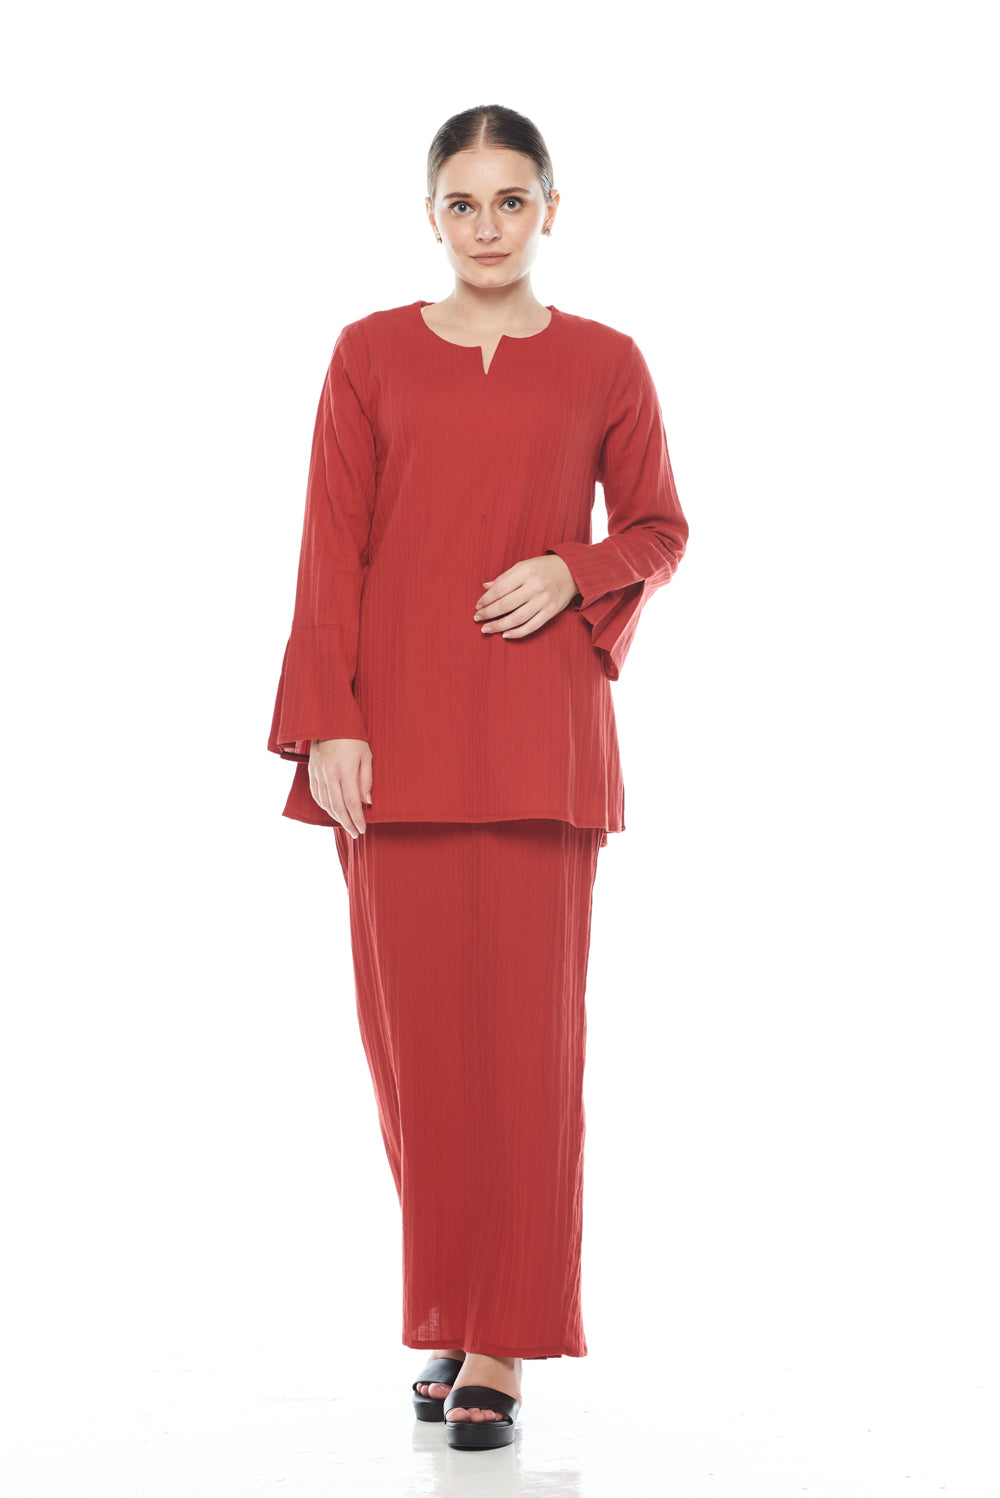 Saila Top in Red